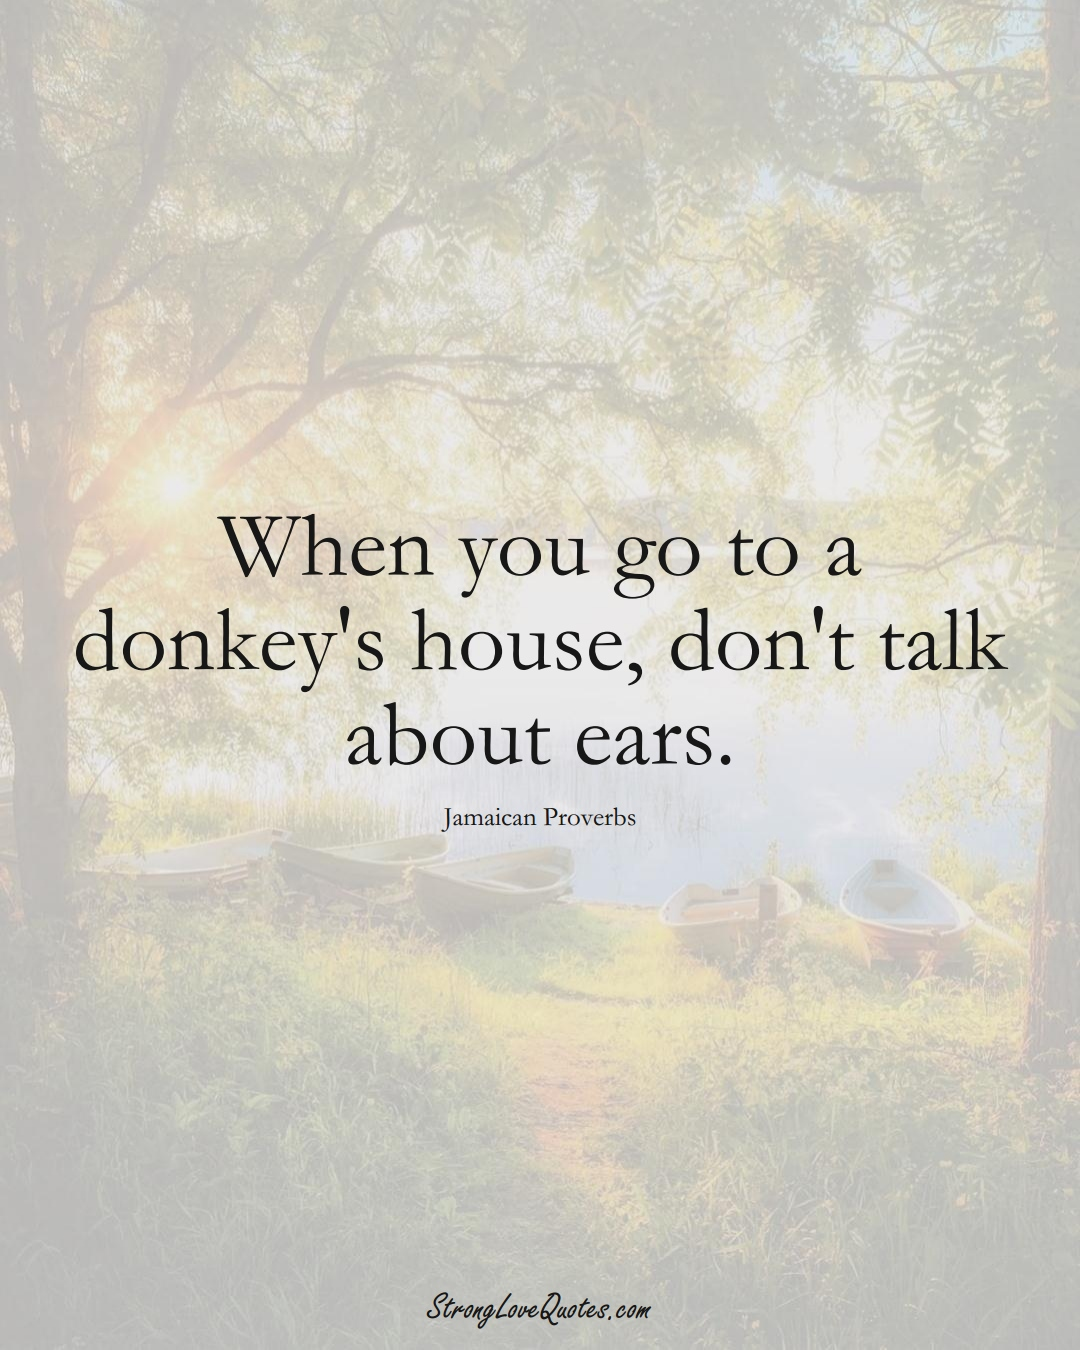 When you go to a donkey's house, don't talk about ears. (Jamaican Sayings);  #CaribbeanSayings